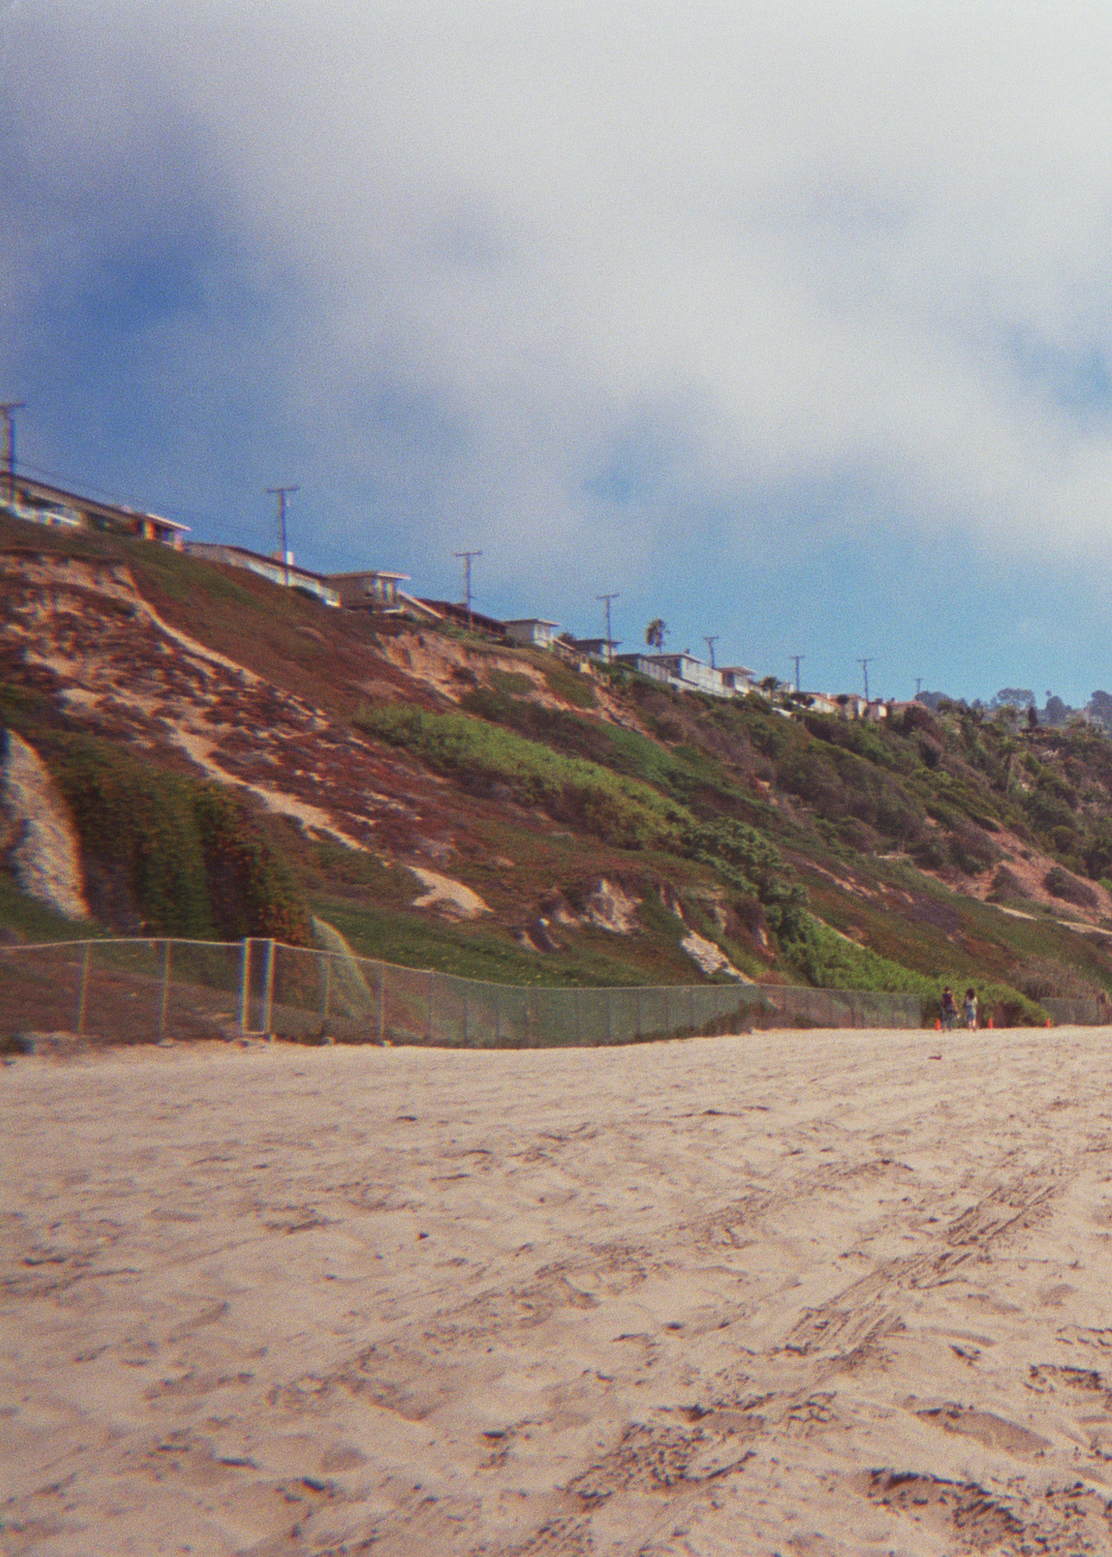 Photo of RAT beach taken by Piper Haywood in 2009